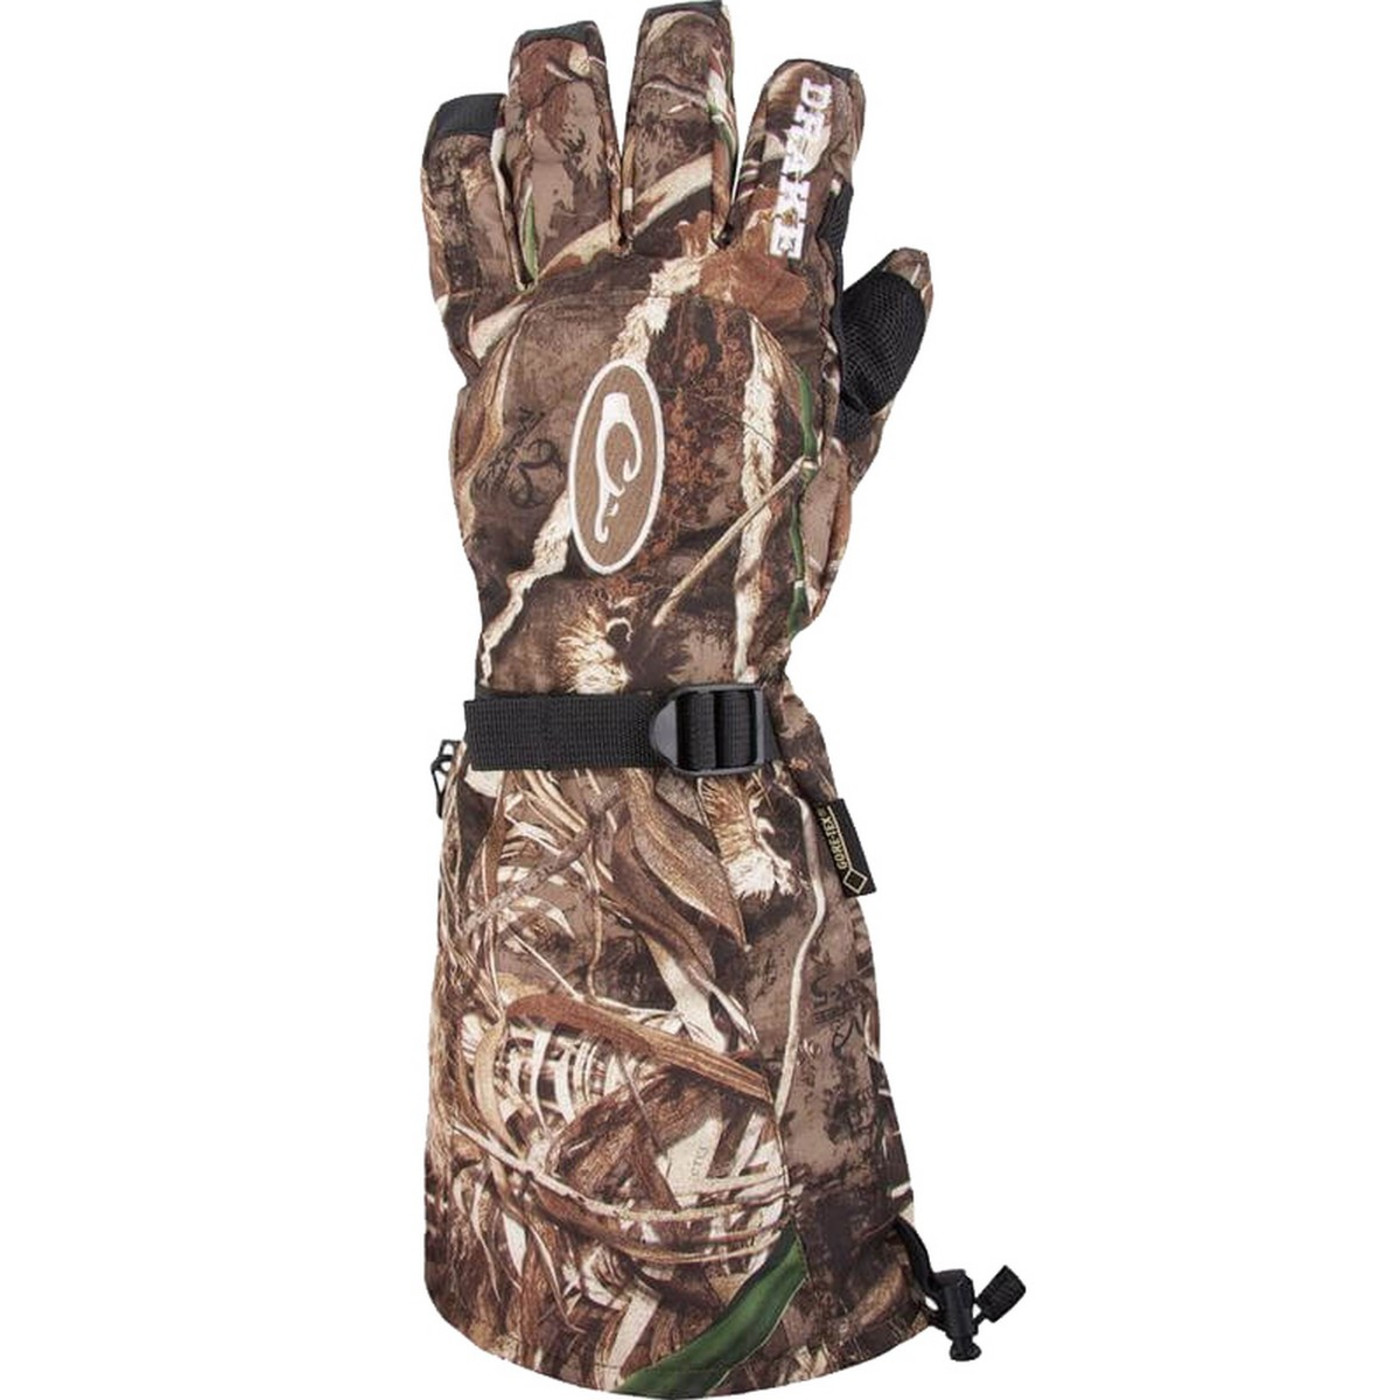 Drake Double Duty Decoy Glove in Realtree Max 5 Color